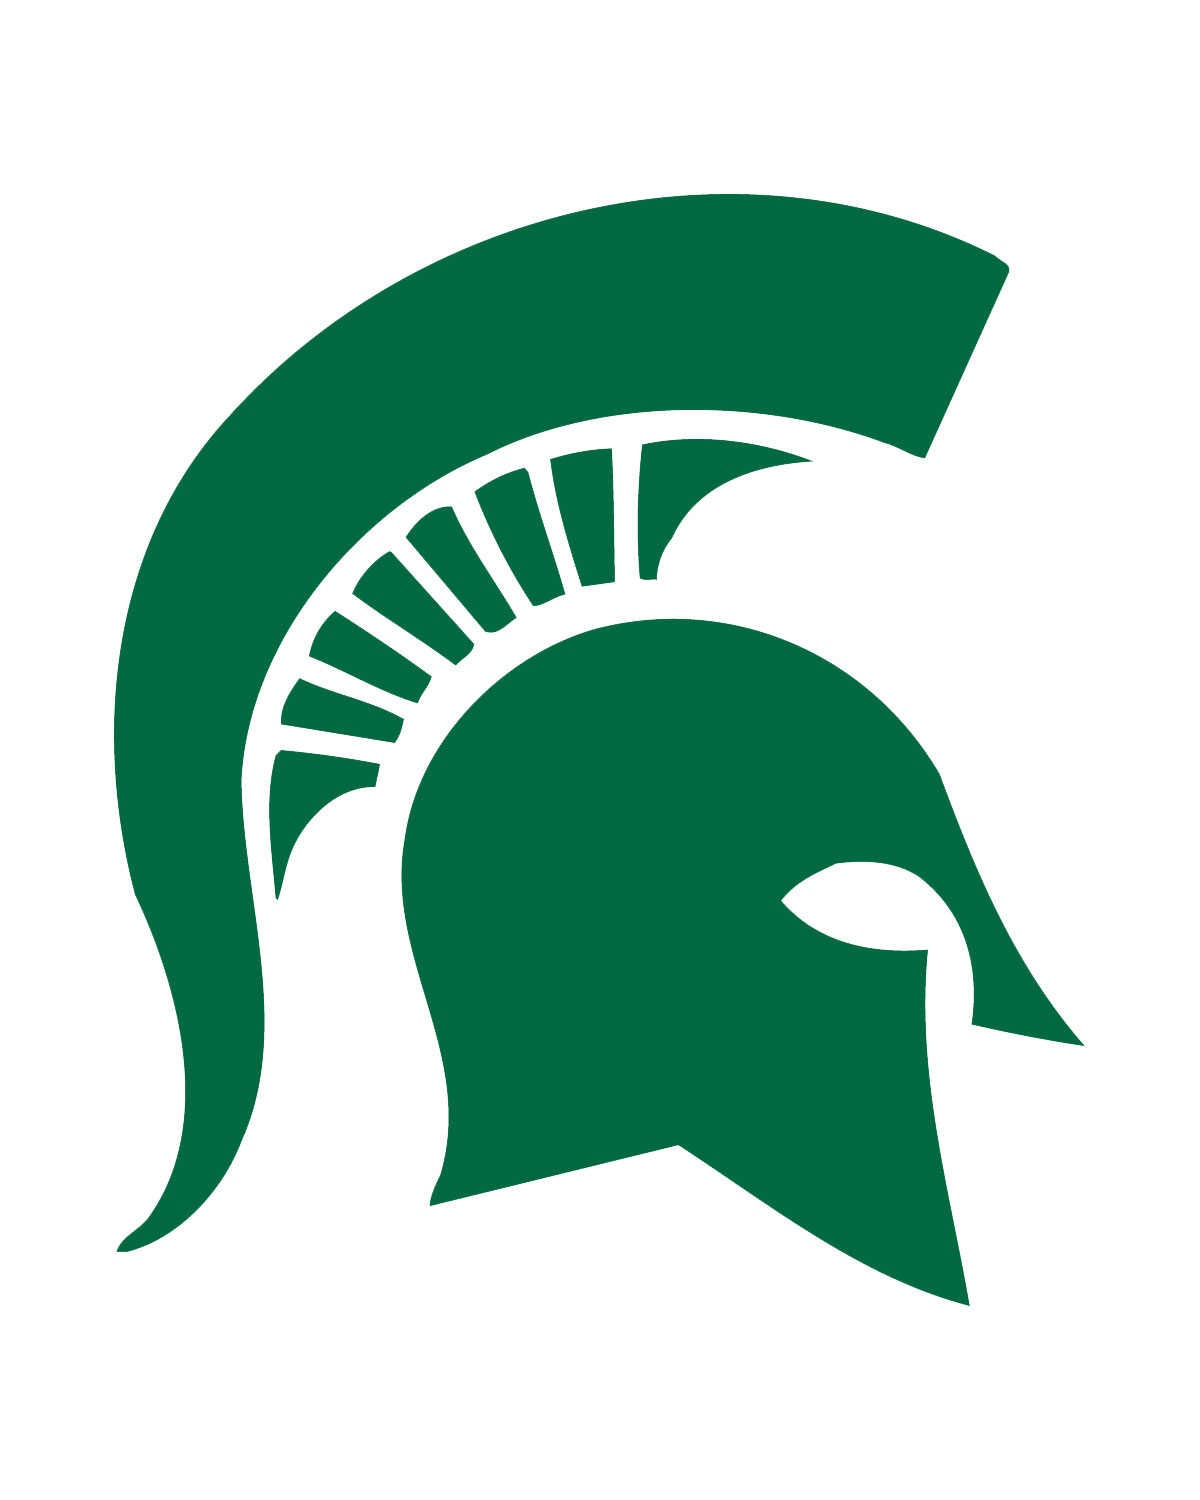 Michigan state university logo clipart picture freeuse Michigan State Football Clipart - Clipart Kid picture freeuse